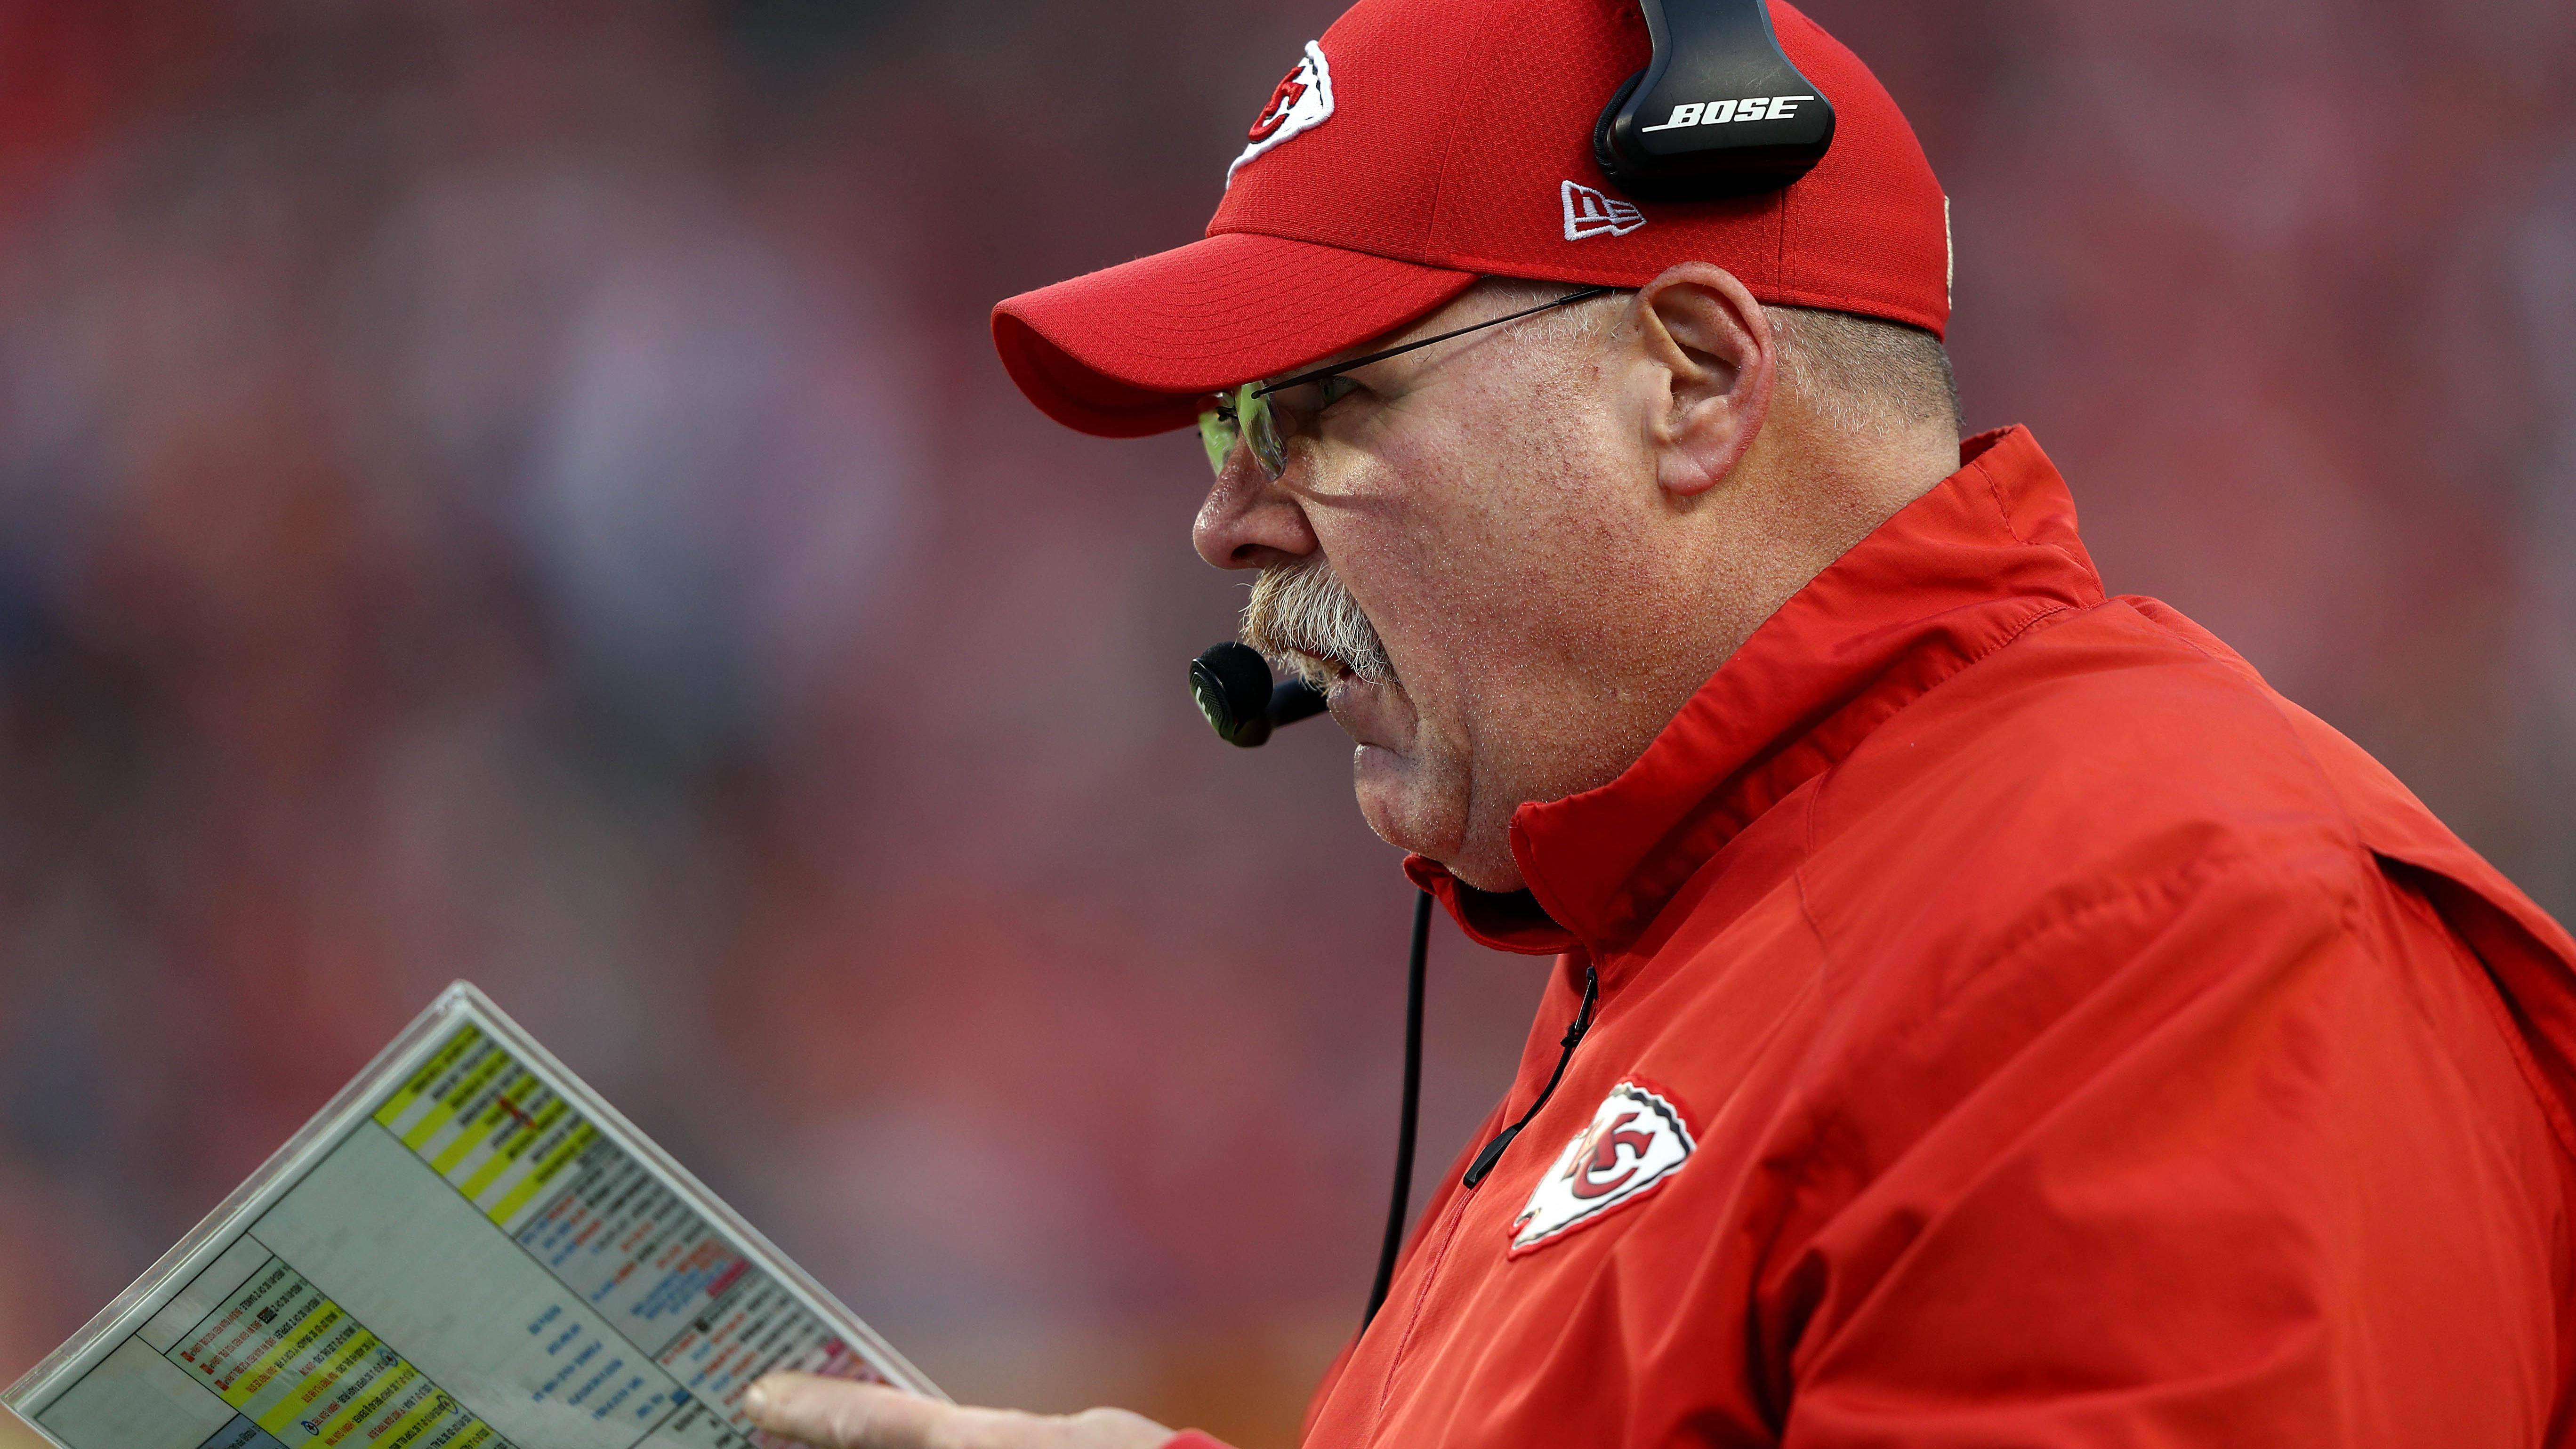 Andy Reid S Legacy Is On The Line In Kansas City Video